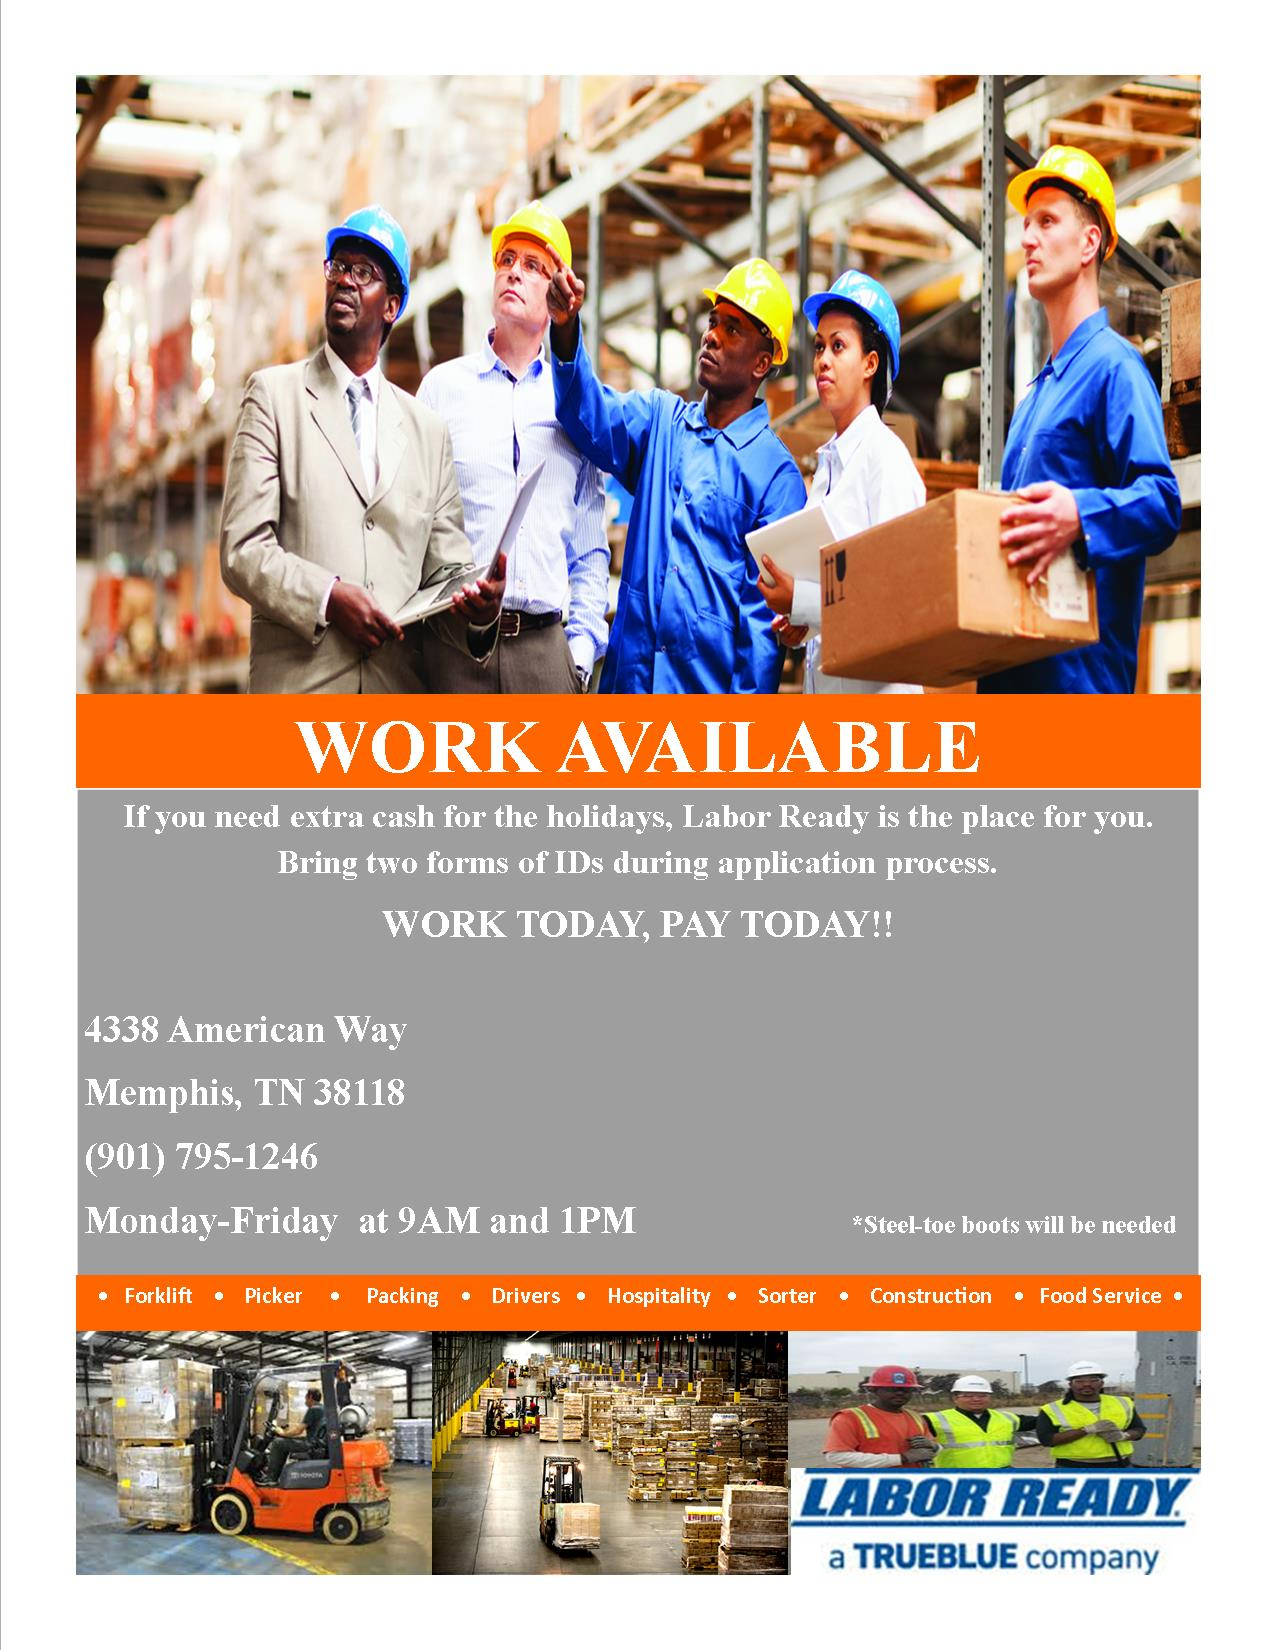 Labor Ready Work_Available_Flyer